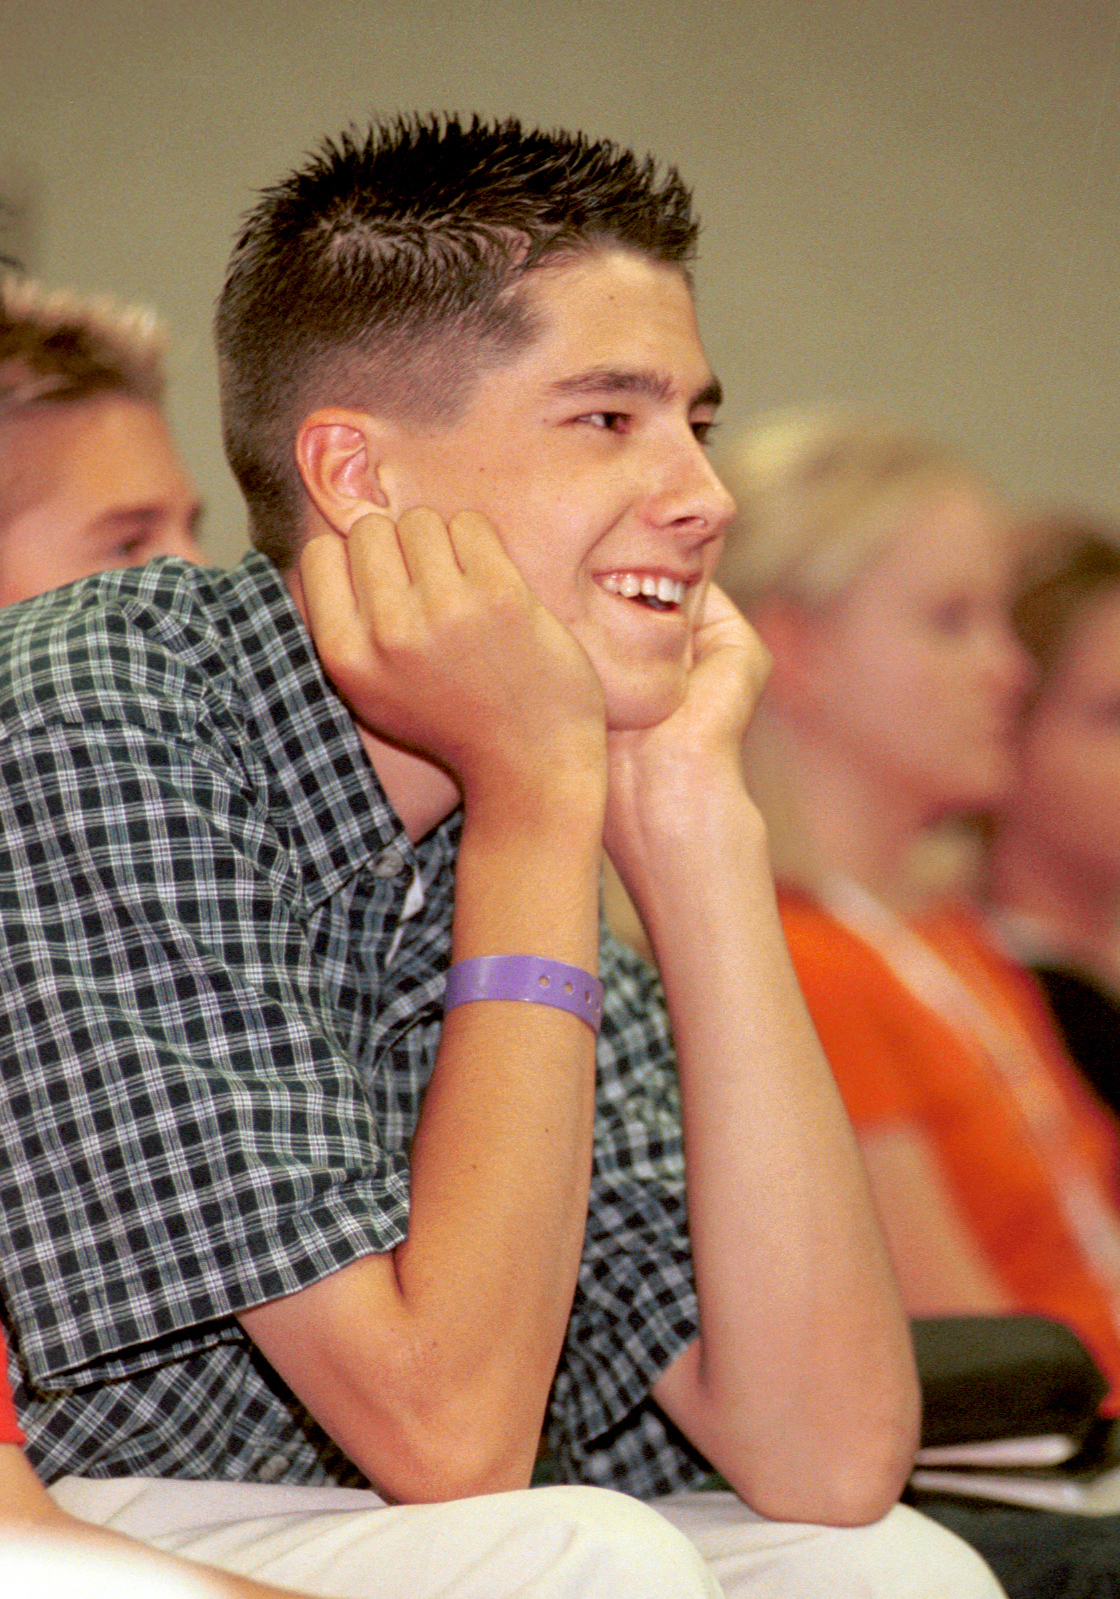 A young man listens during a class by Brad Wilcox in 2000.